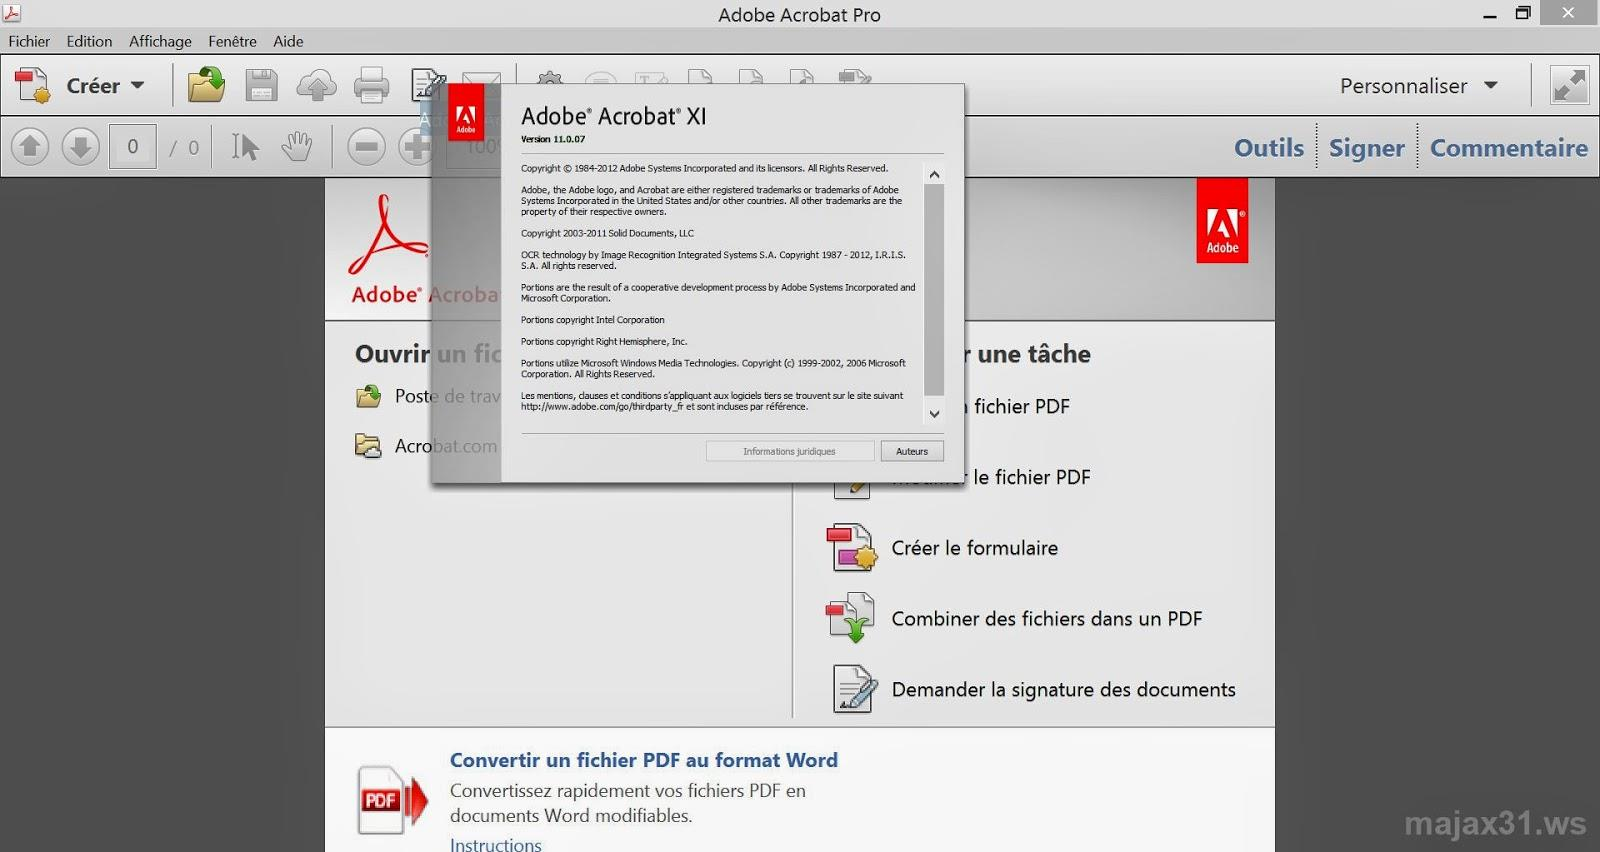 Adobe acrobat professional download | Adobe Acrobat Pro DC